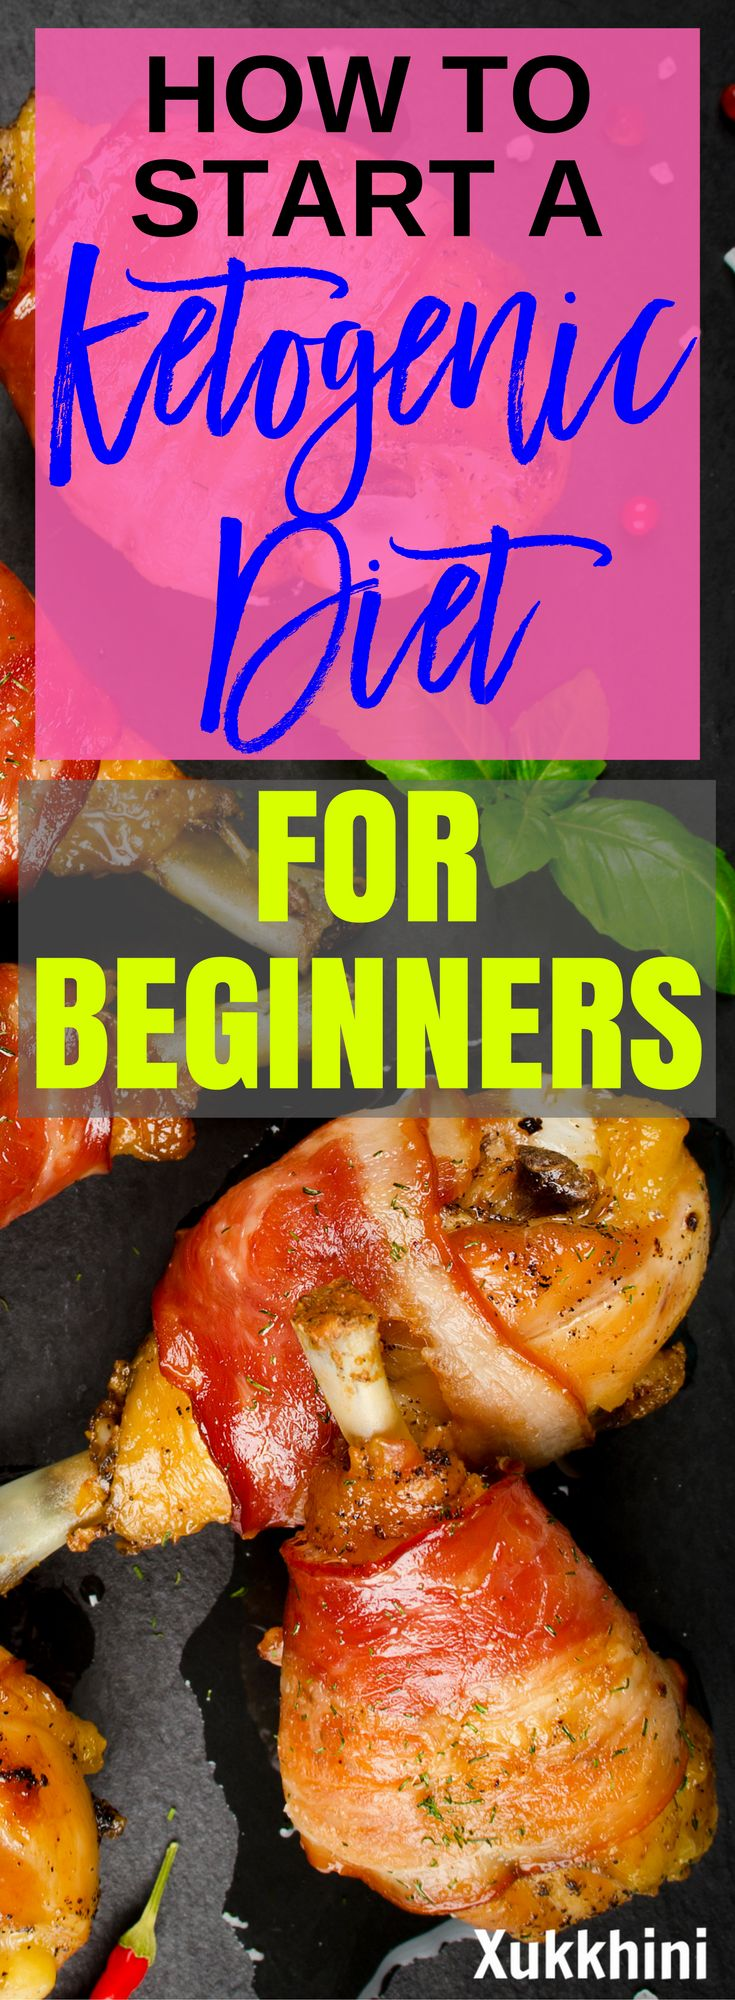 Start losing weight today without ever feeling hungry with the ultimate step-by-step beginner's guide to the ketogenic diet. This is the diet that will make you thin! #KetogenicDiet #KetogenicDietForBeginners #KetogenicDietForWeightLoss | Ketogenic Diet P